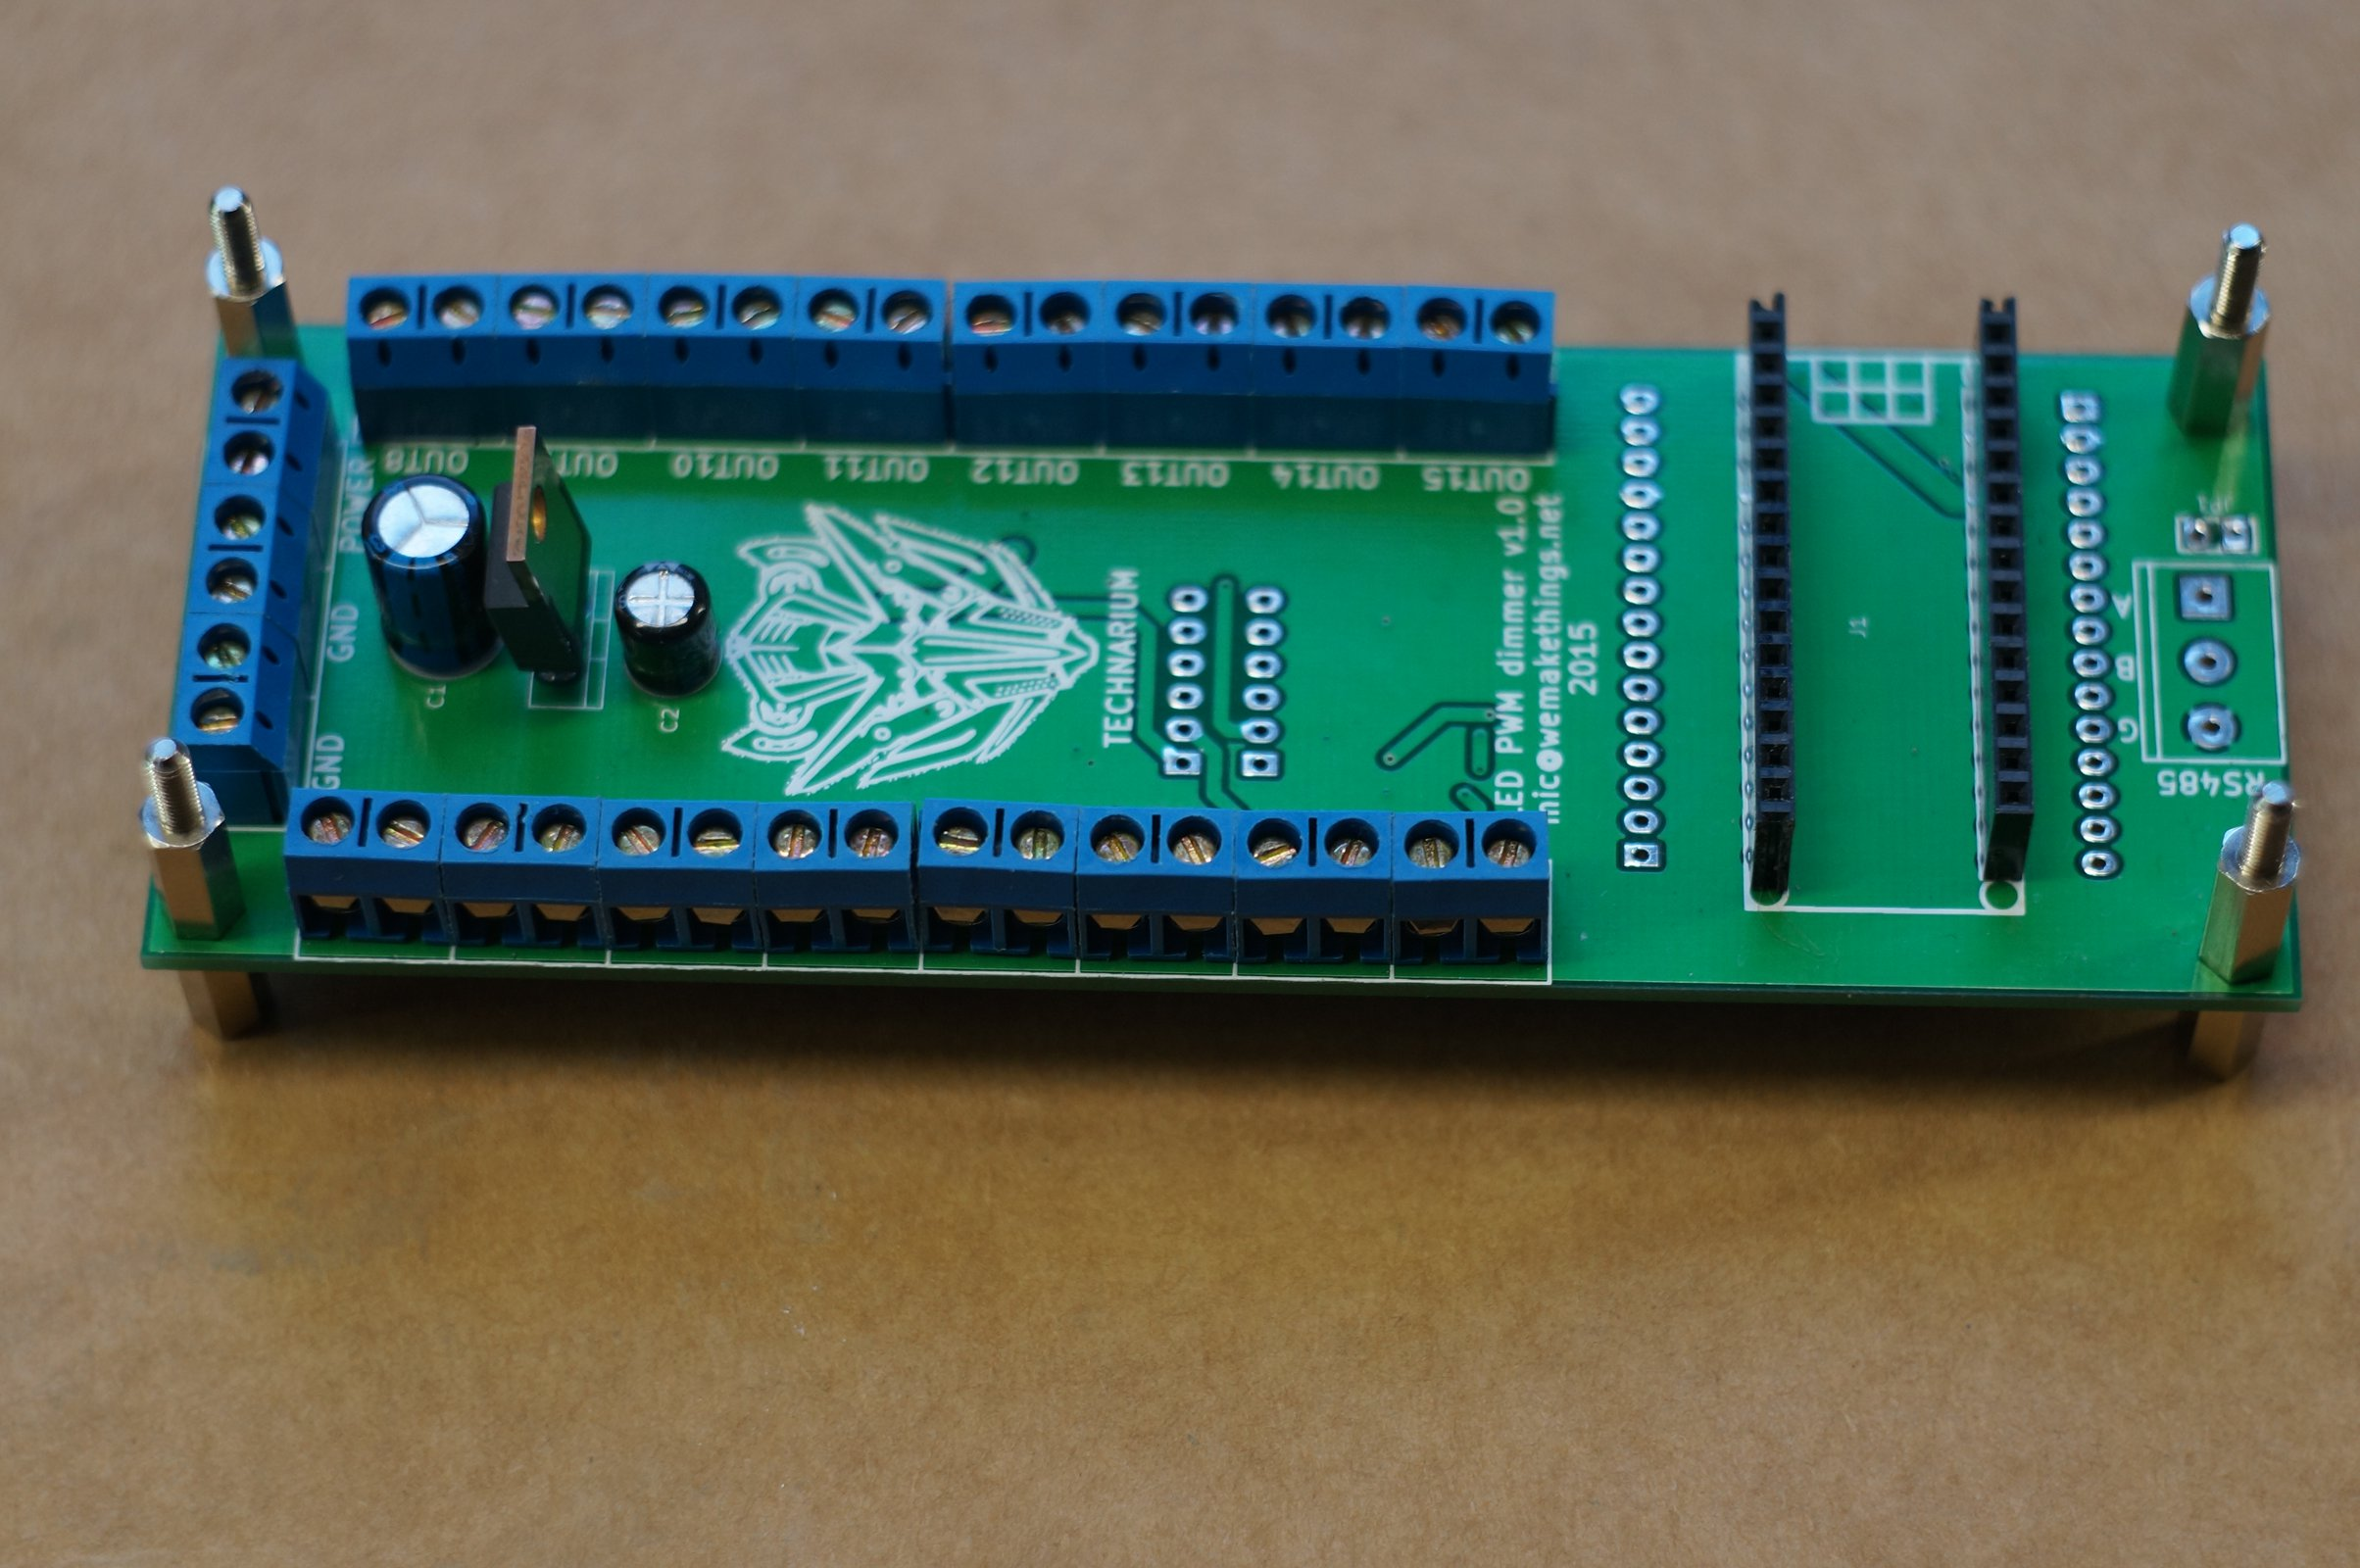 16 channel 12 bit pwm led dimmer from catnip electronics on tindie. Black Bedroom Furniture Sets. Home Design Ideas